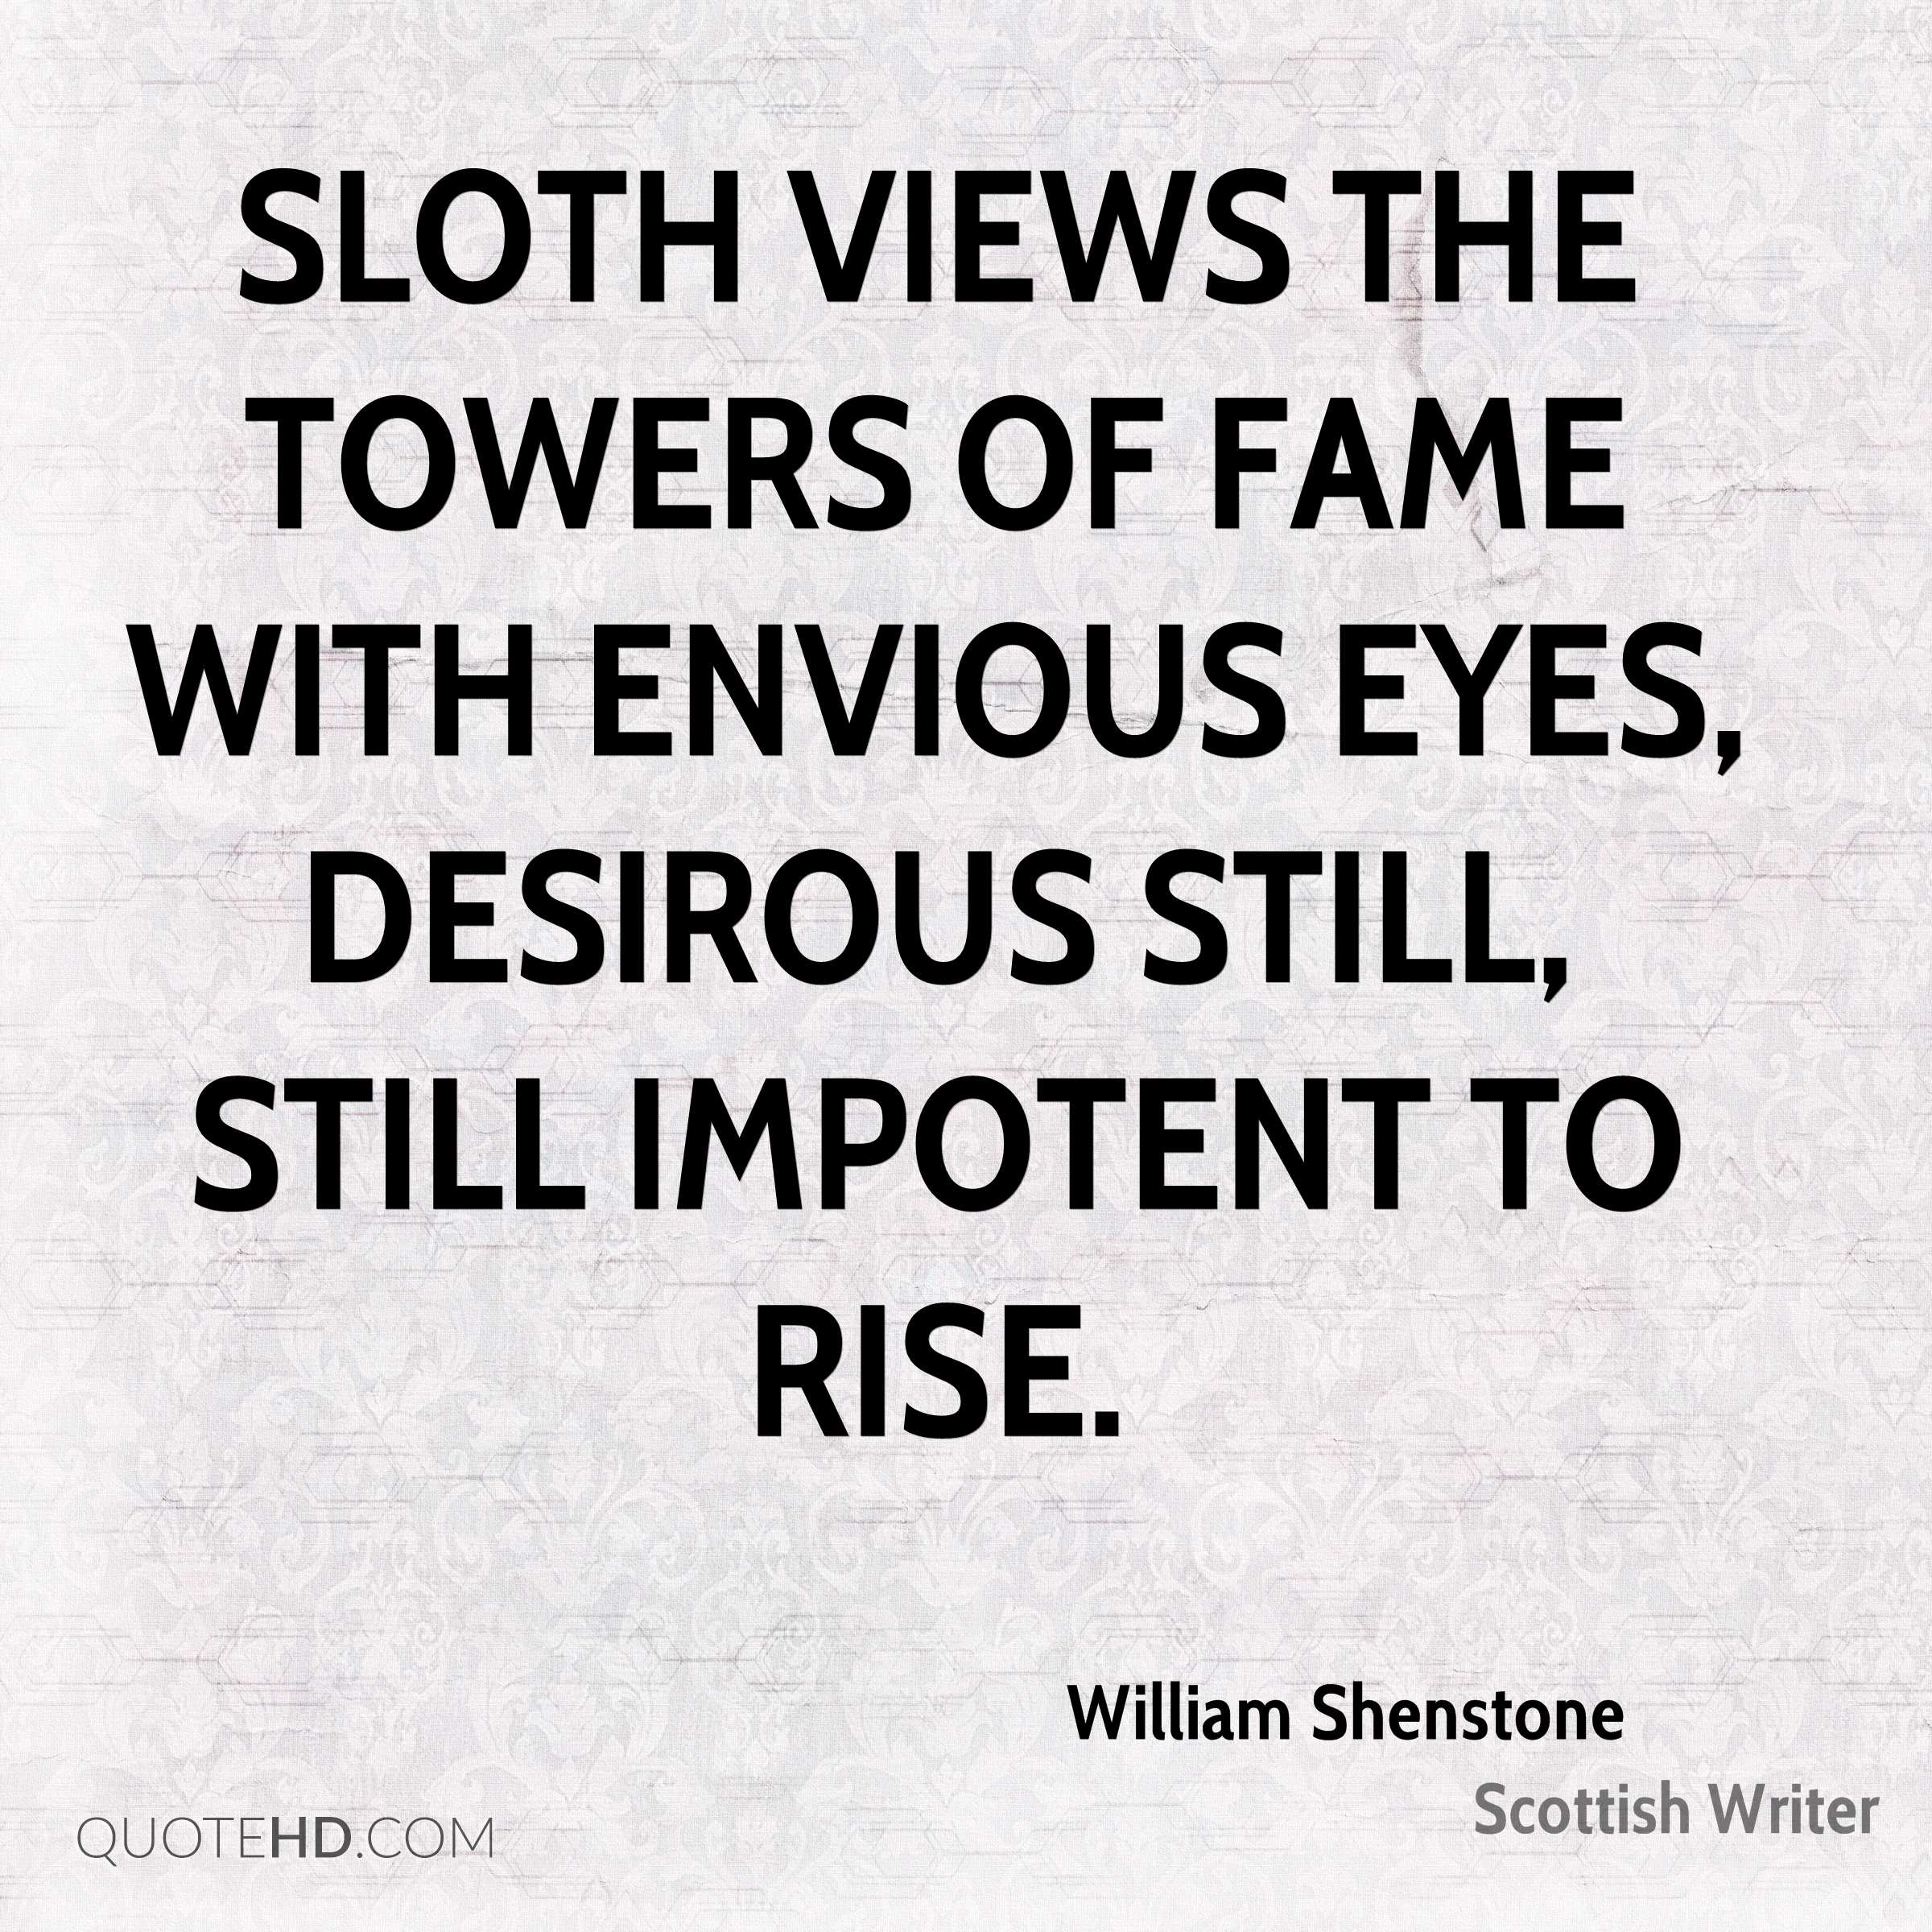 Sloth views the towers of Fame with envious eyes, Desirous still, still impotent to rise.